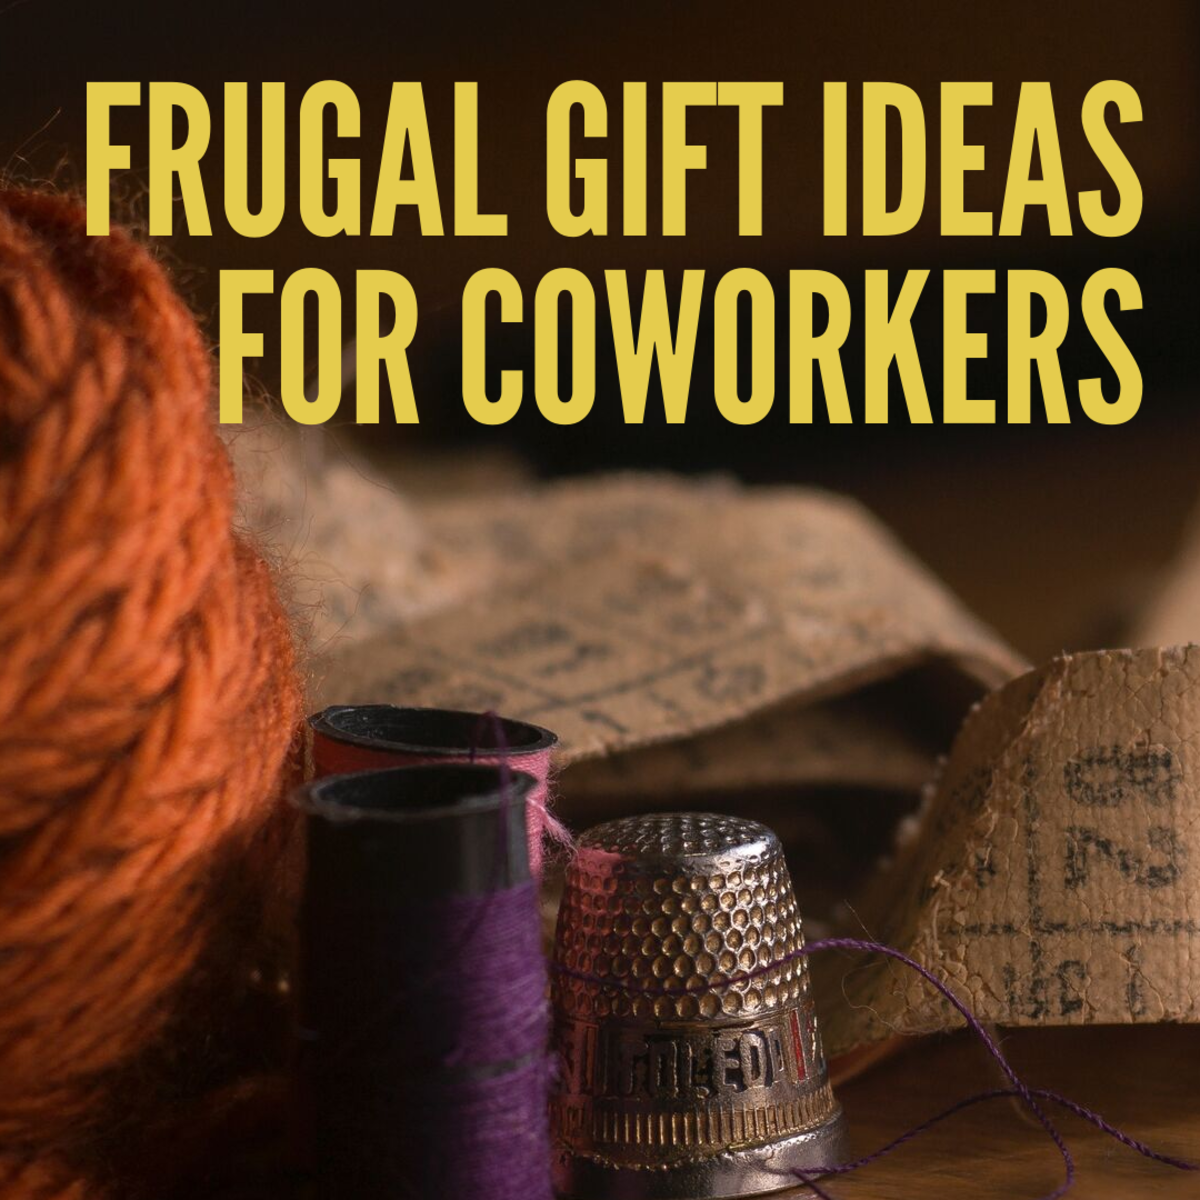 Frugal Gift Ideas for Coworkers